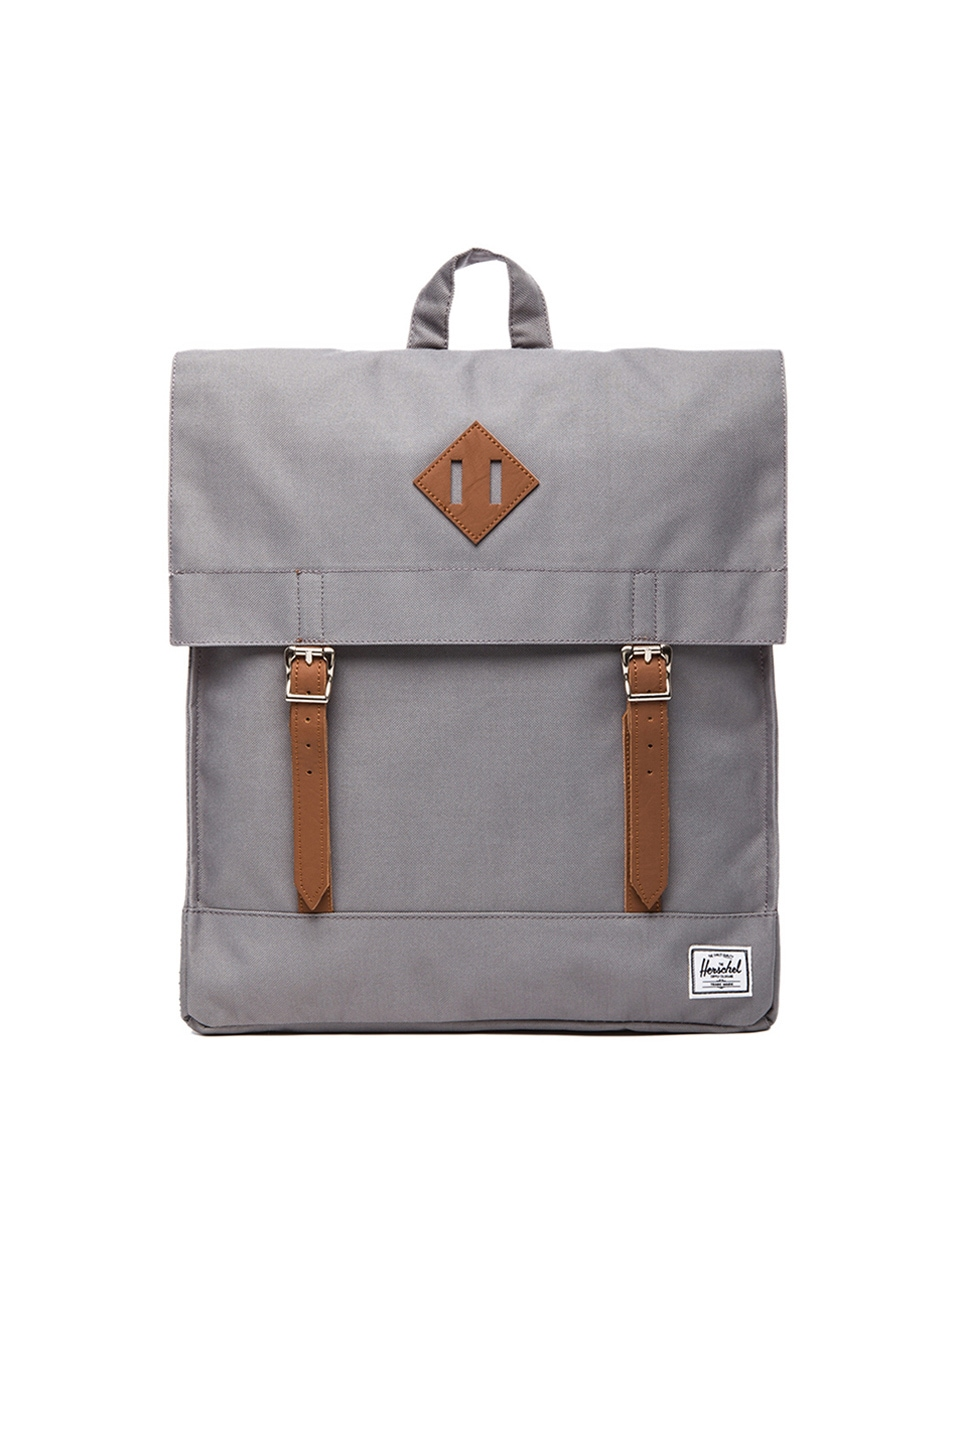 Herschel Supply Co. Sac à dos Survey en Gris